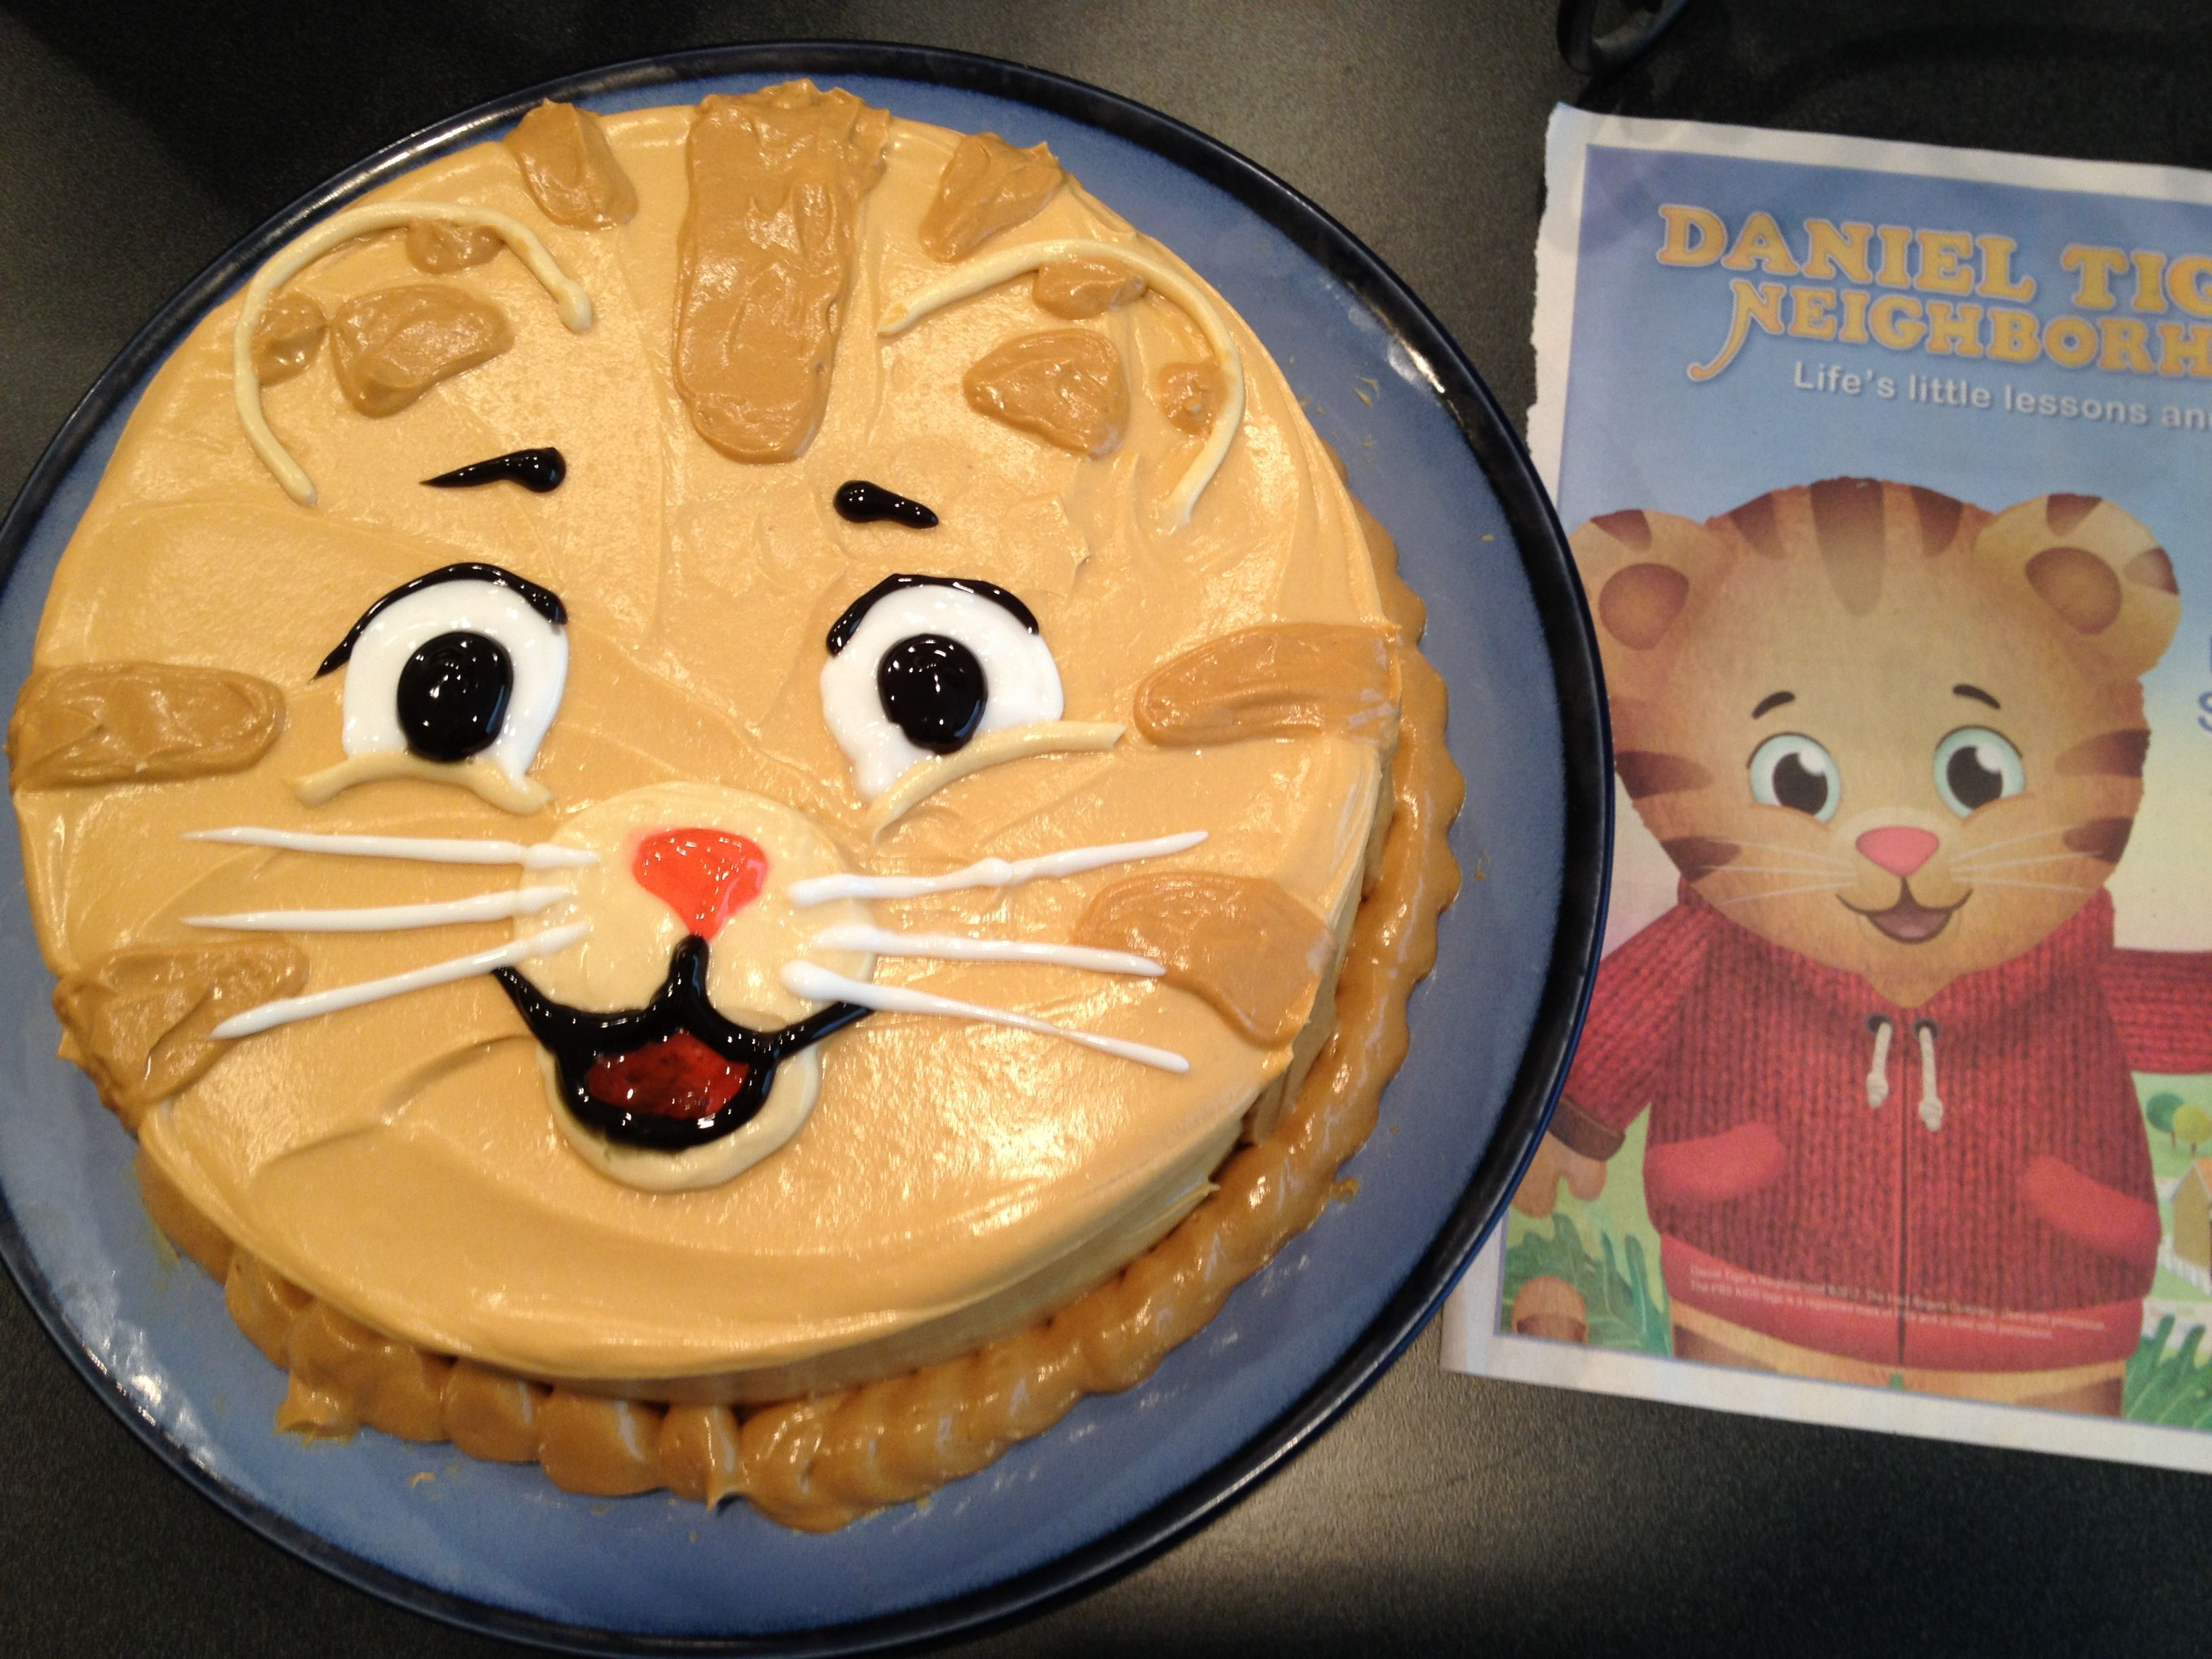 Homemade Daniel Tiger Birthday Cake Cute But Would Use